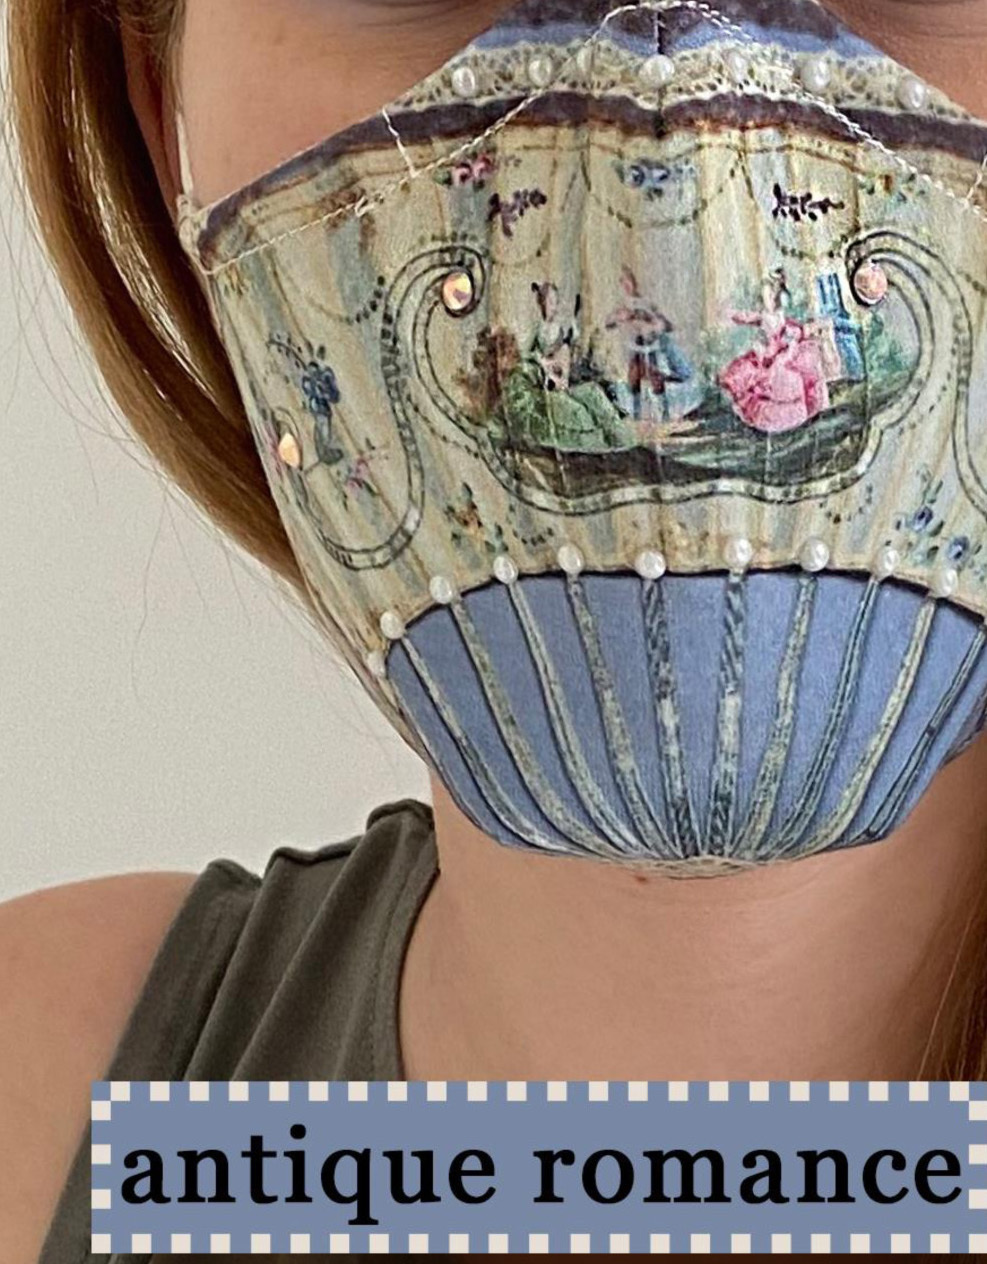 IPNG: Antique Romance Art Protective Mask (Ships Immed!)